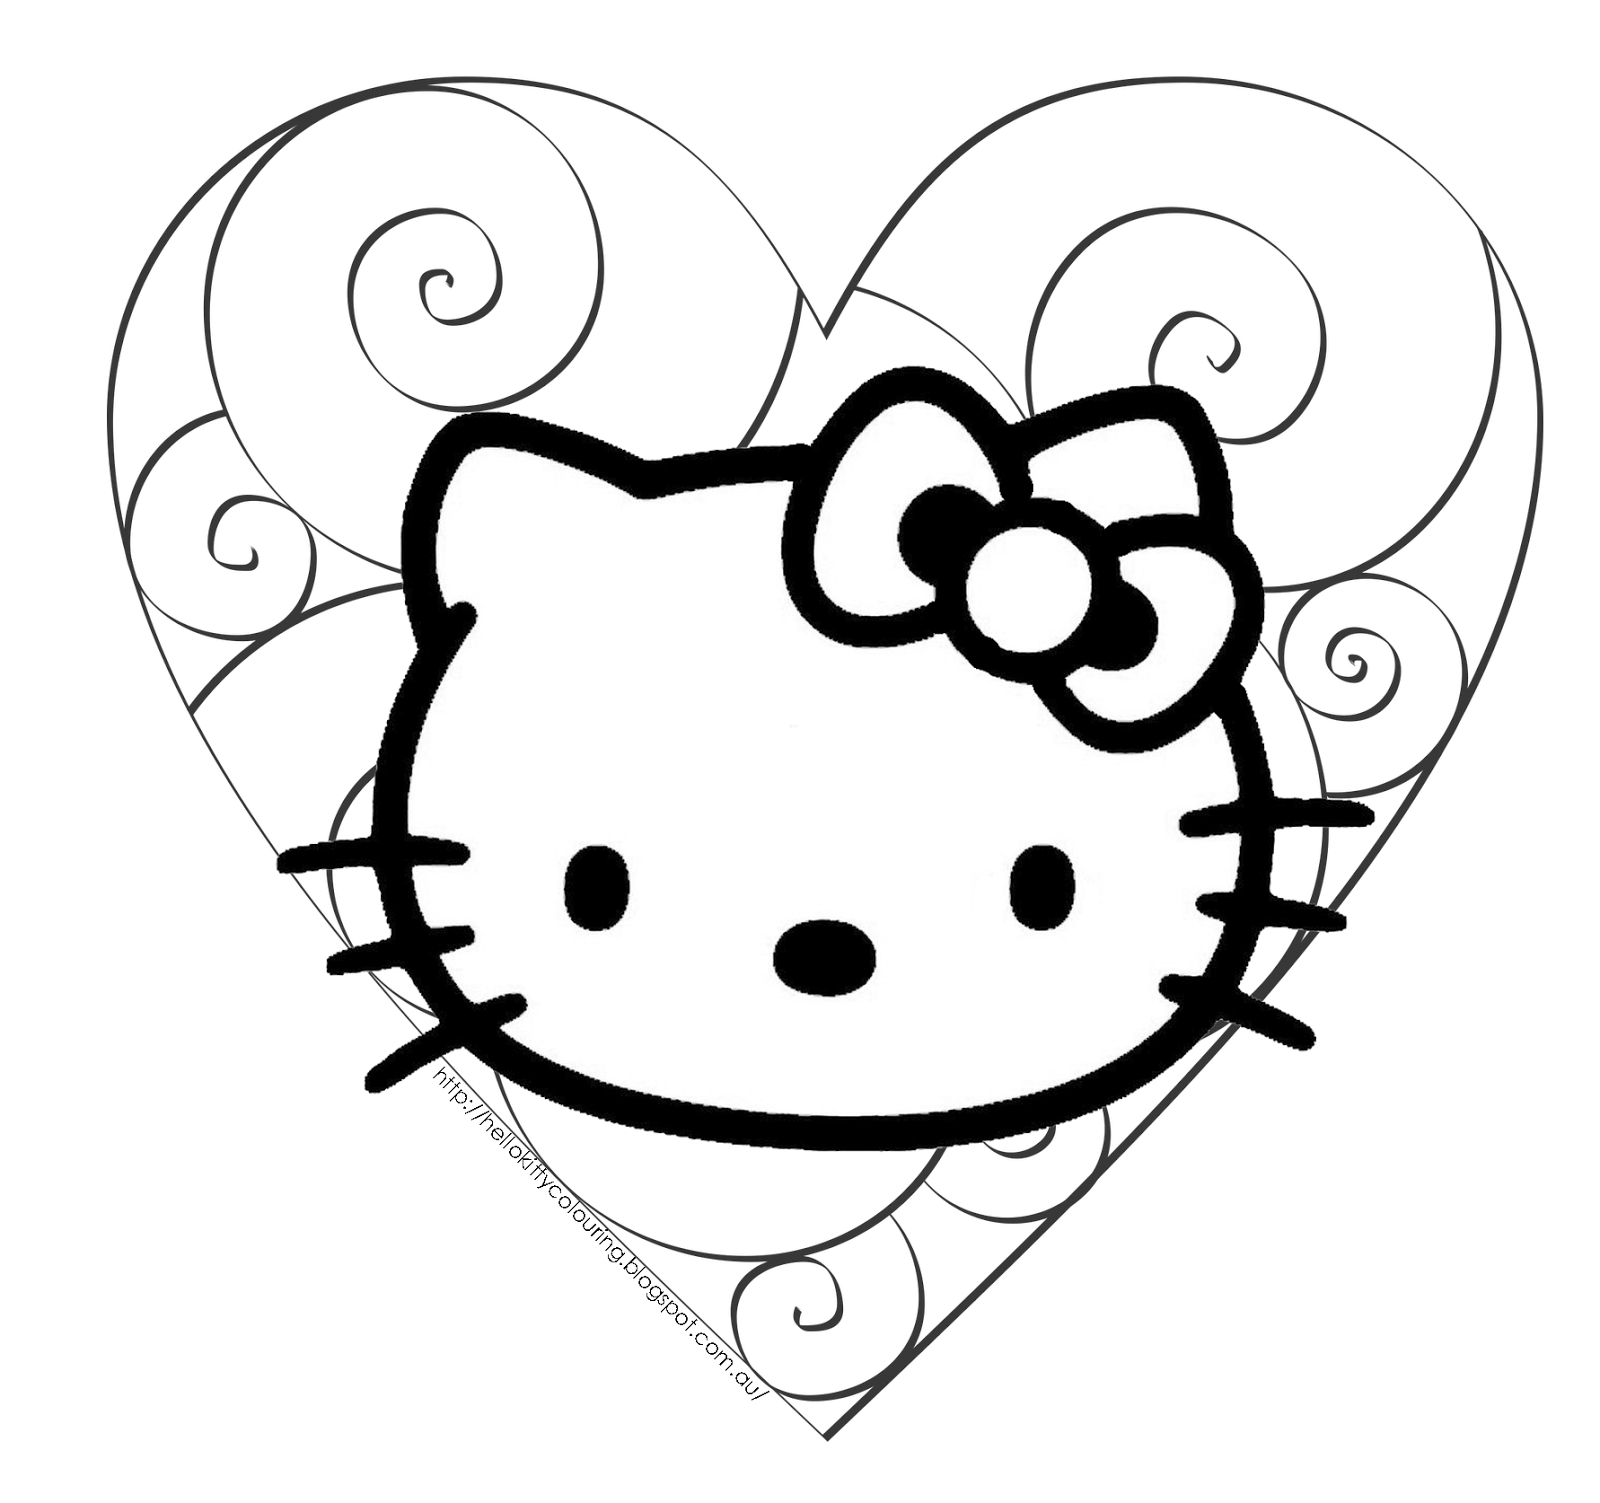 I think my favorite coloring page here is the one of Hello Kitty as an